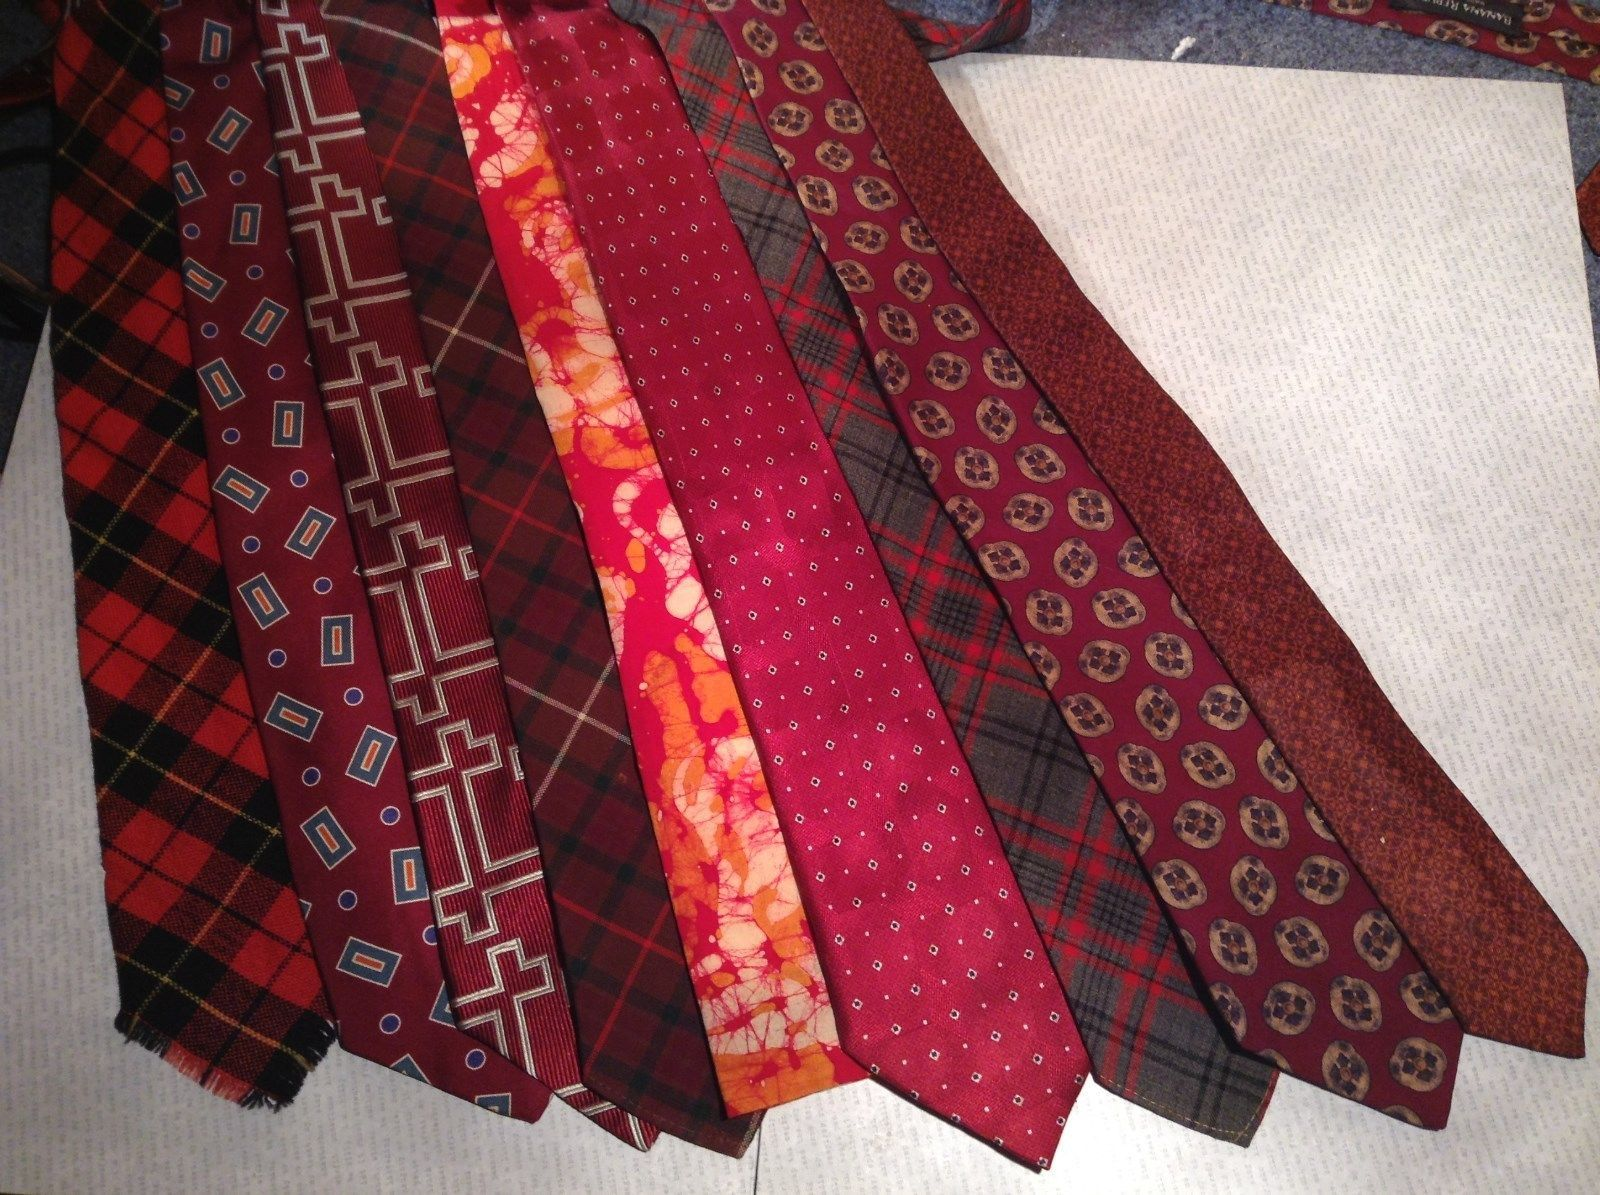 Lot of Nine Red Patterned Ties Varying Material and Styles